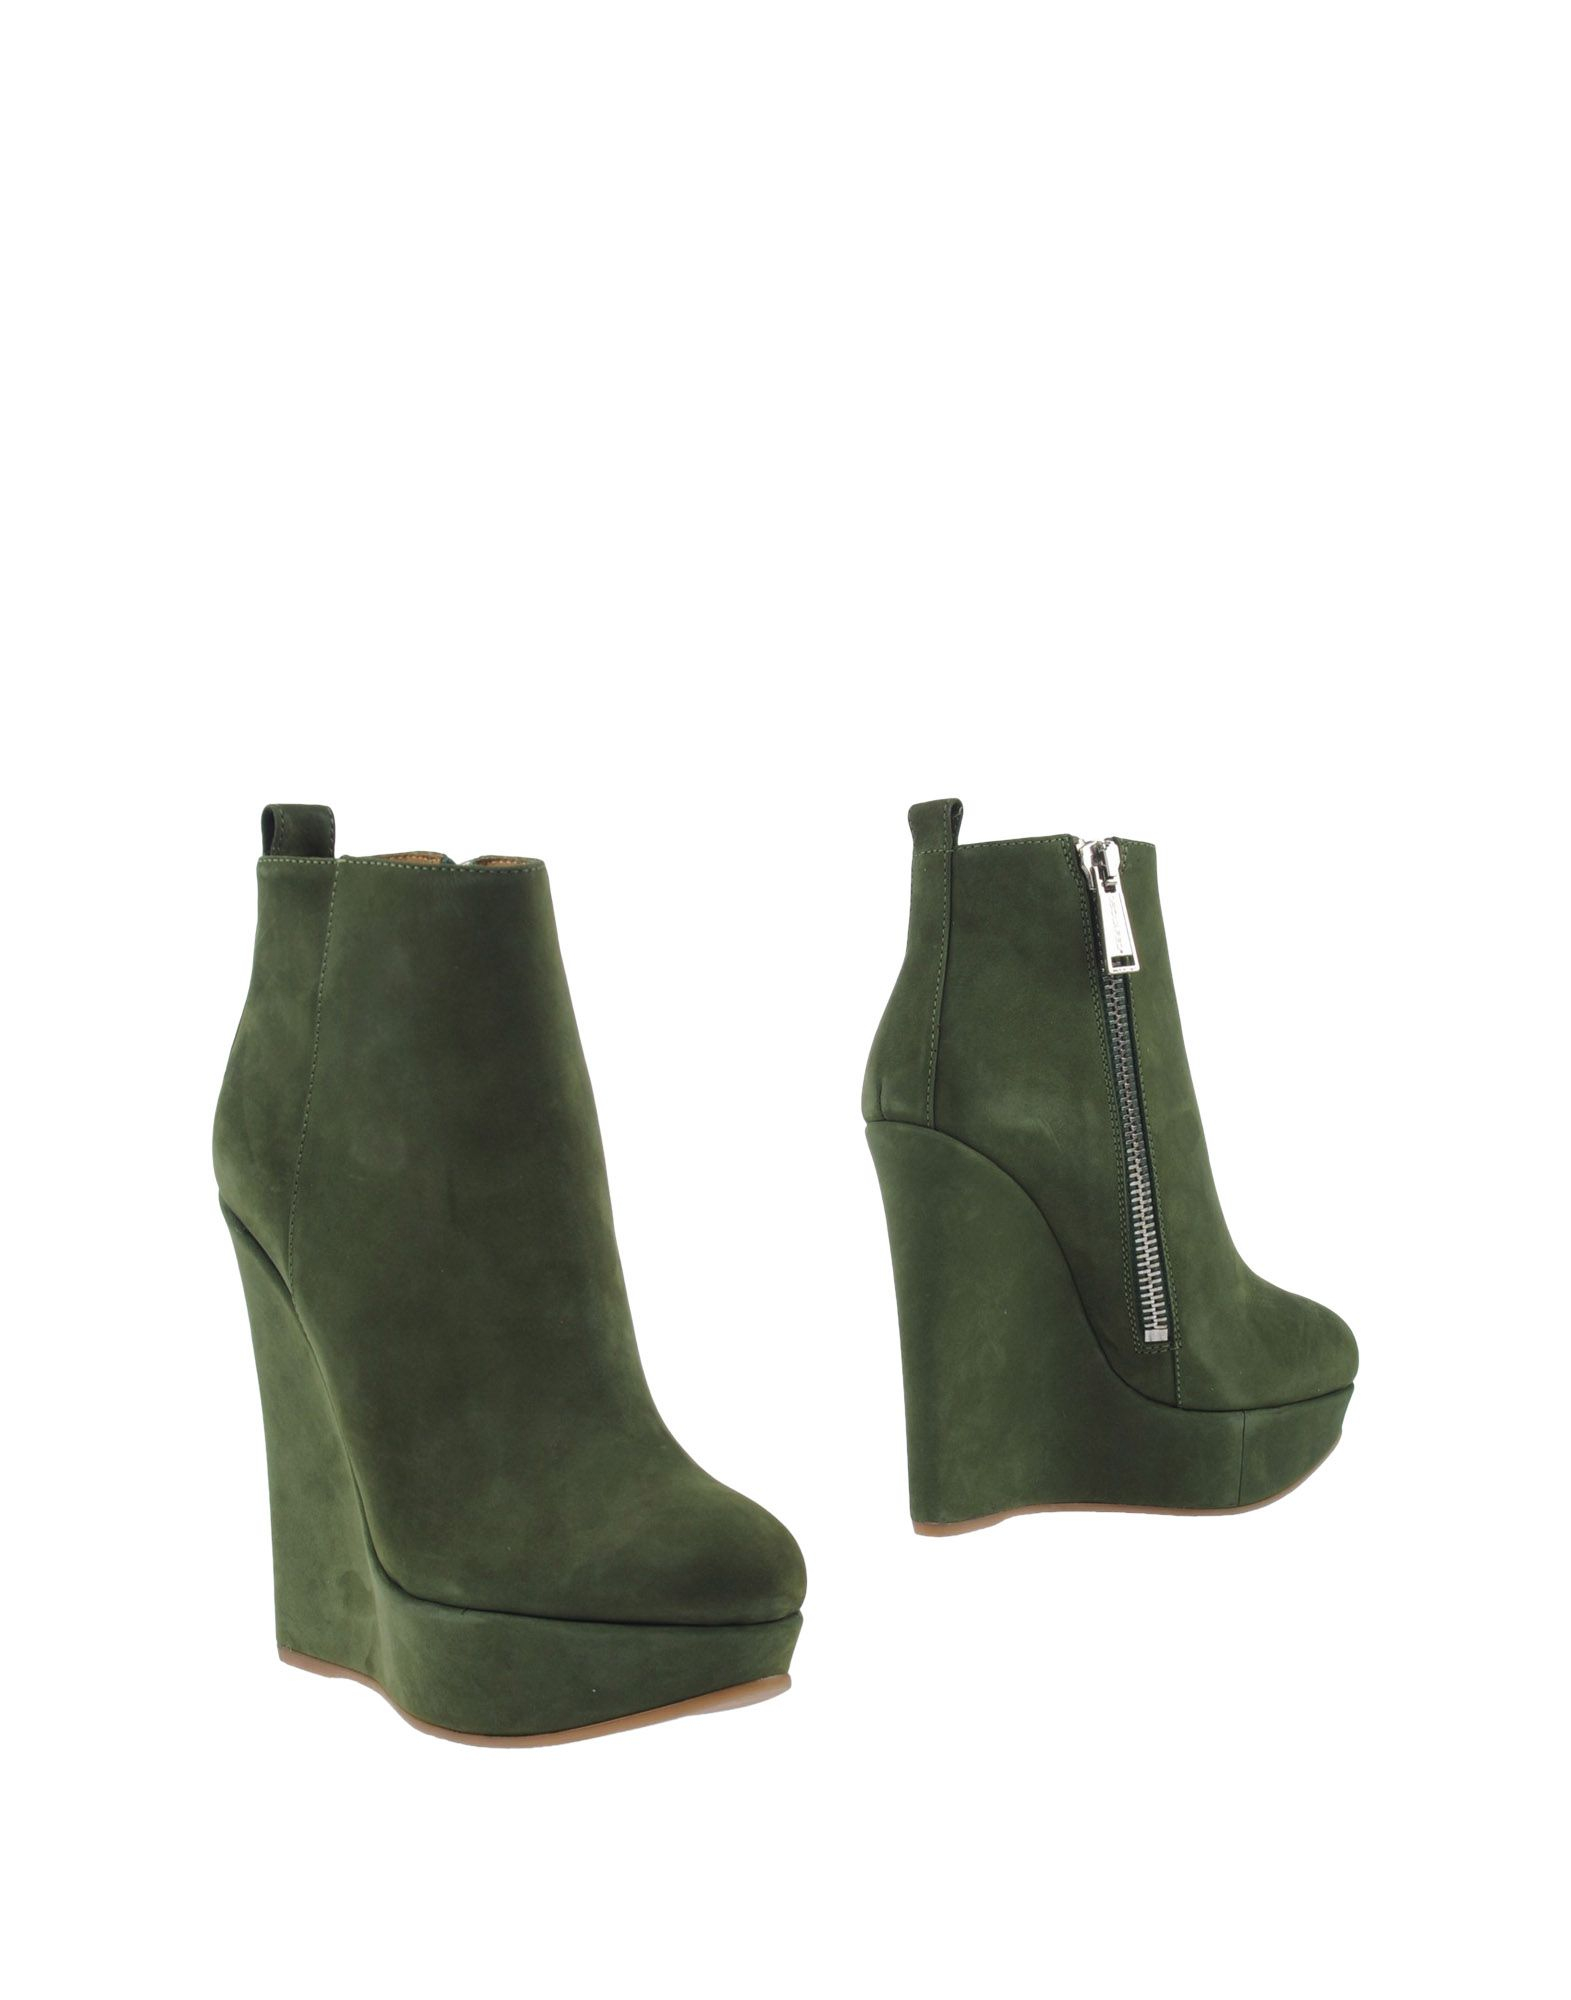 dsquared 178 side zip suede wedge boots in green lyst